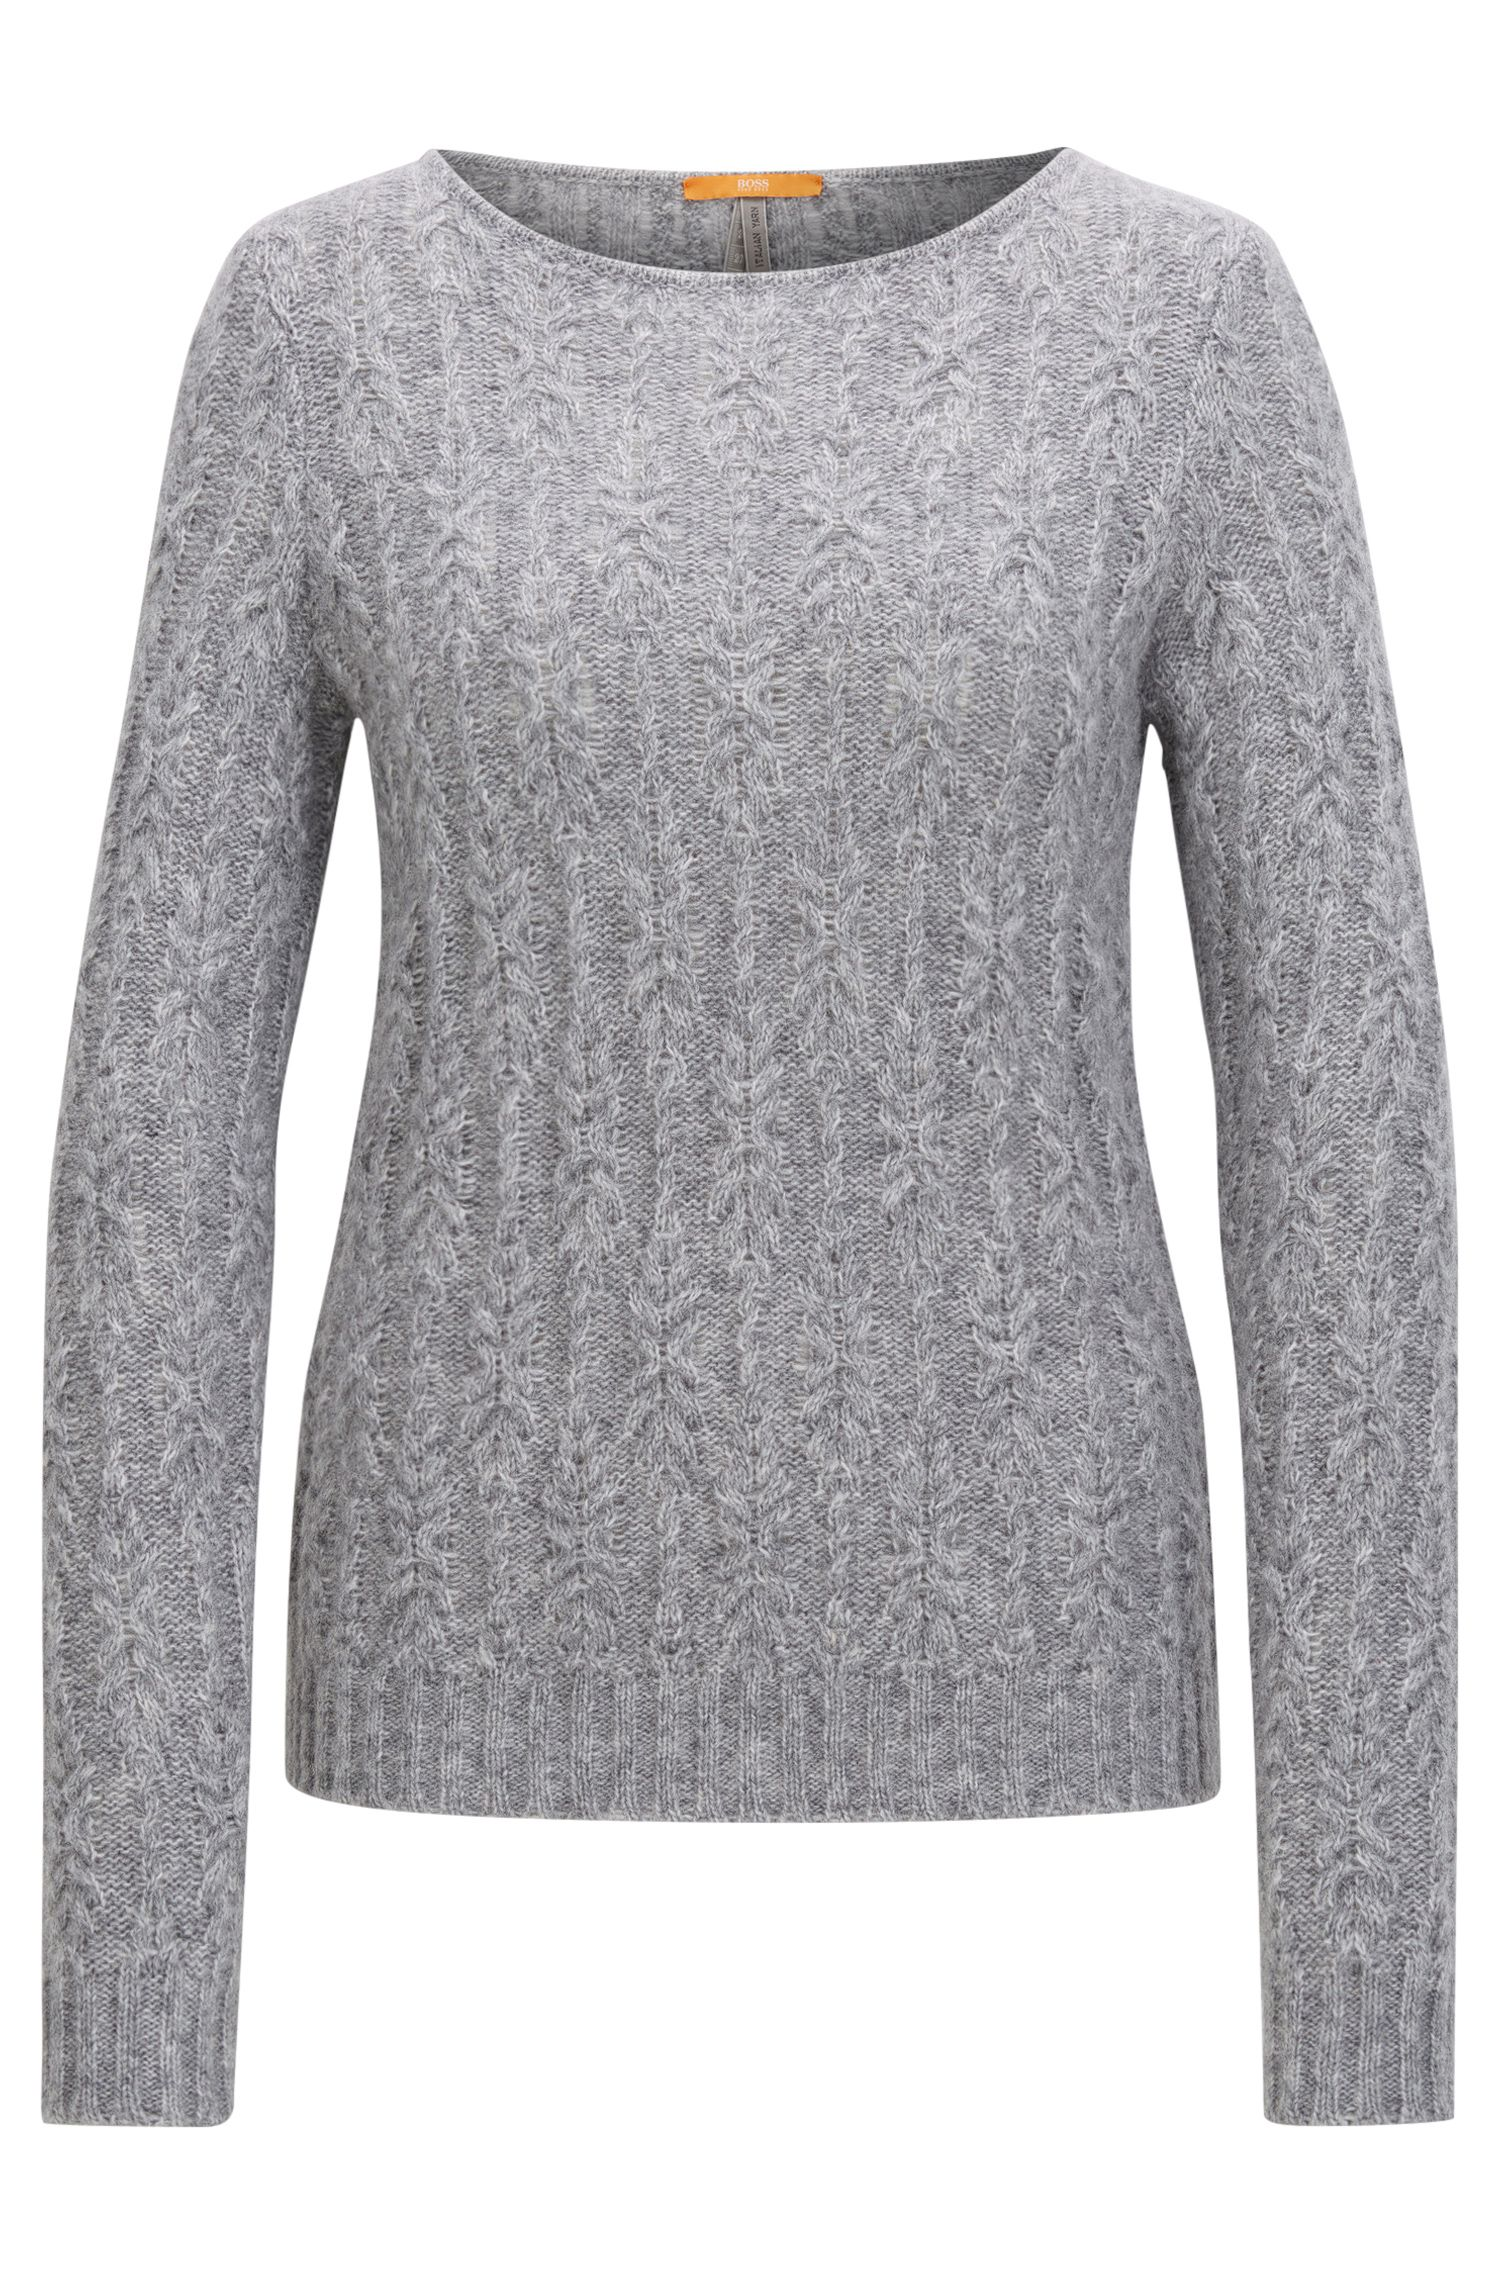 Regular-fit sweater in a reworked cable knit